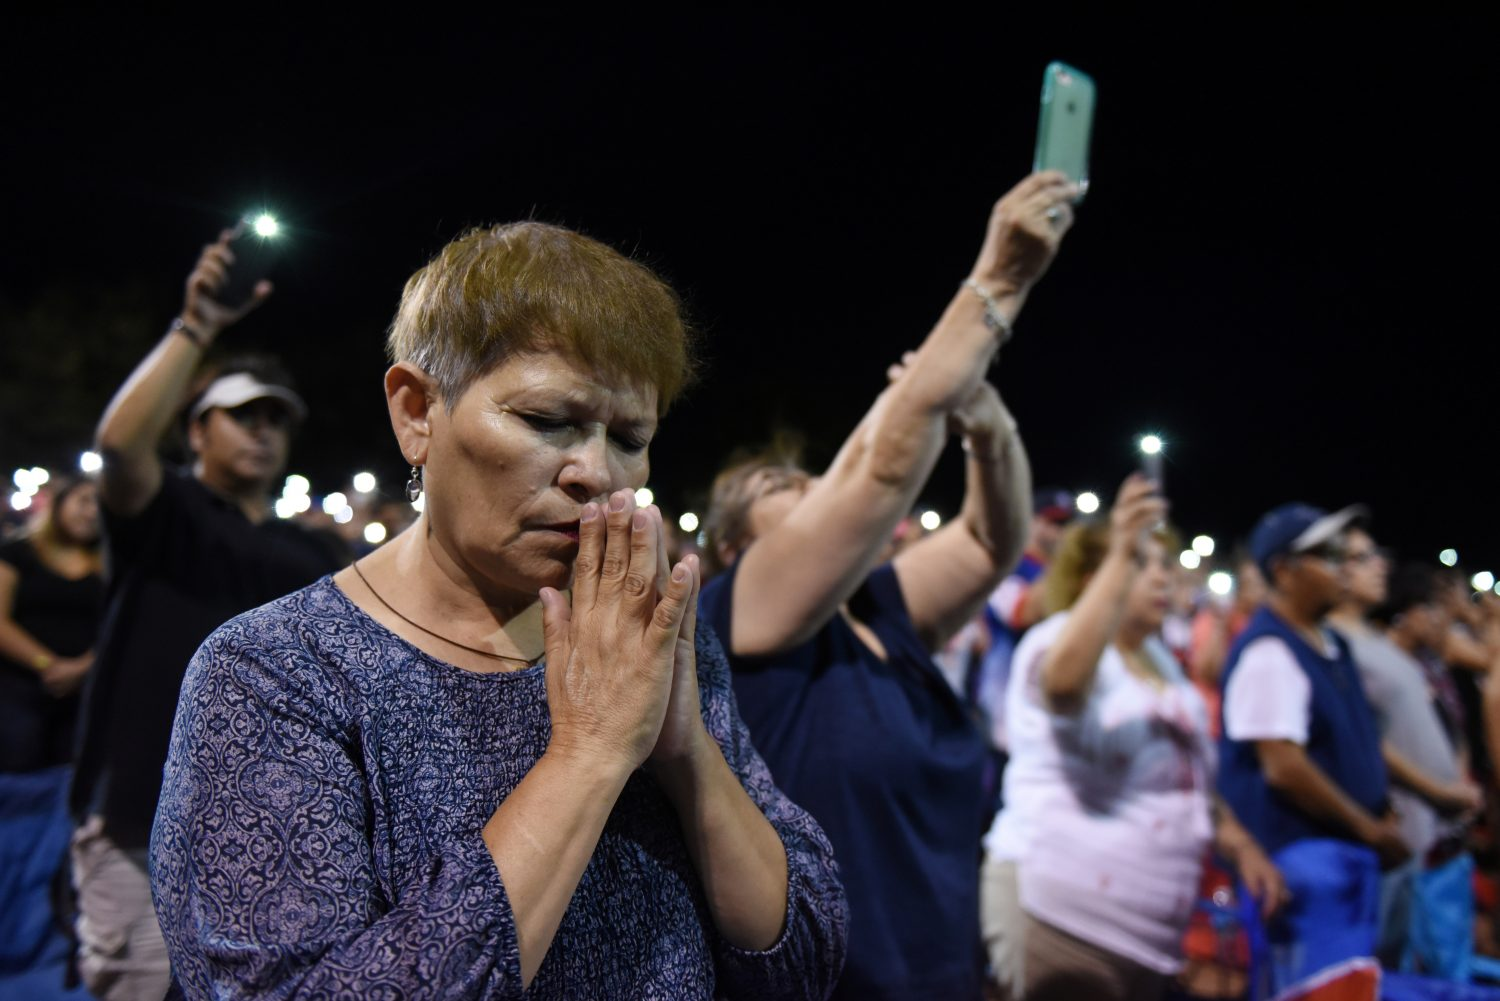 People pray during a vigil a day after a mass shooting at a Walmart store in El Paso, Texas, U.S. August 4, 2019. REUTERS/Callaghan O'Hare